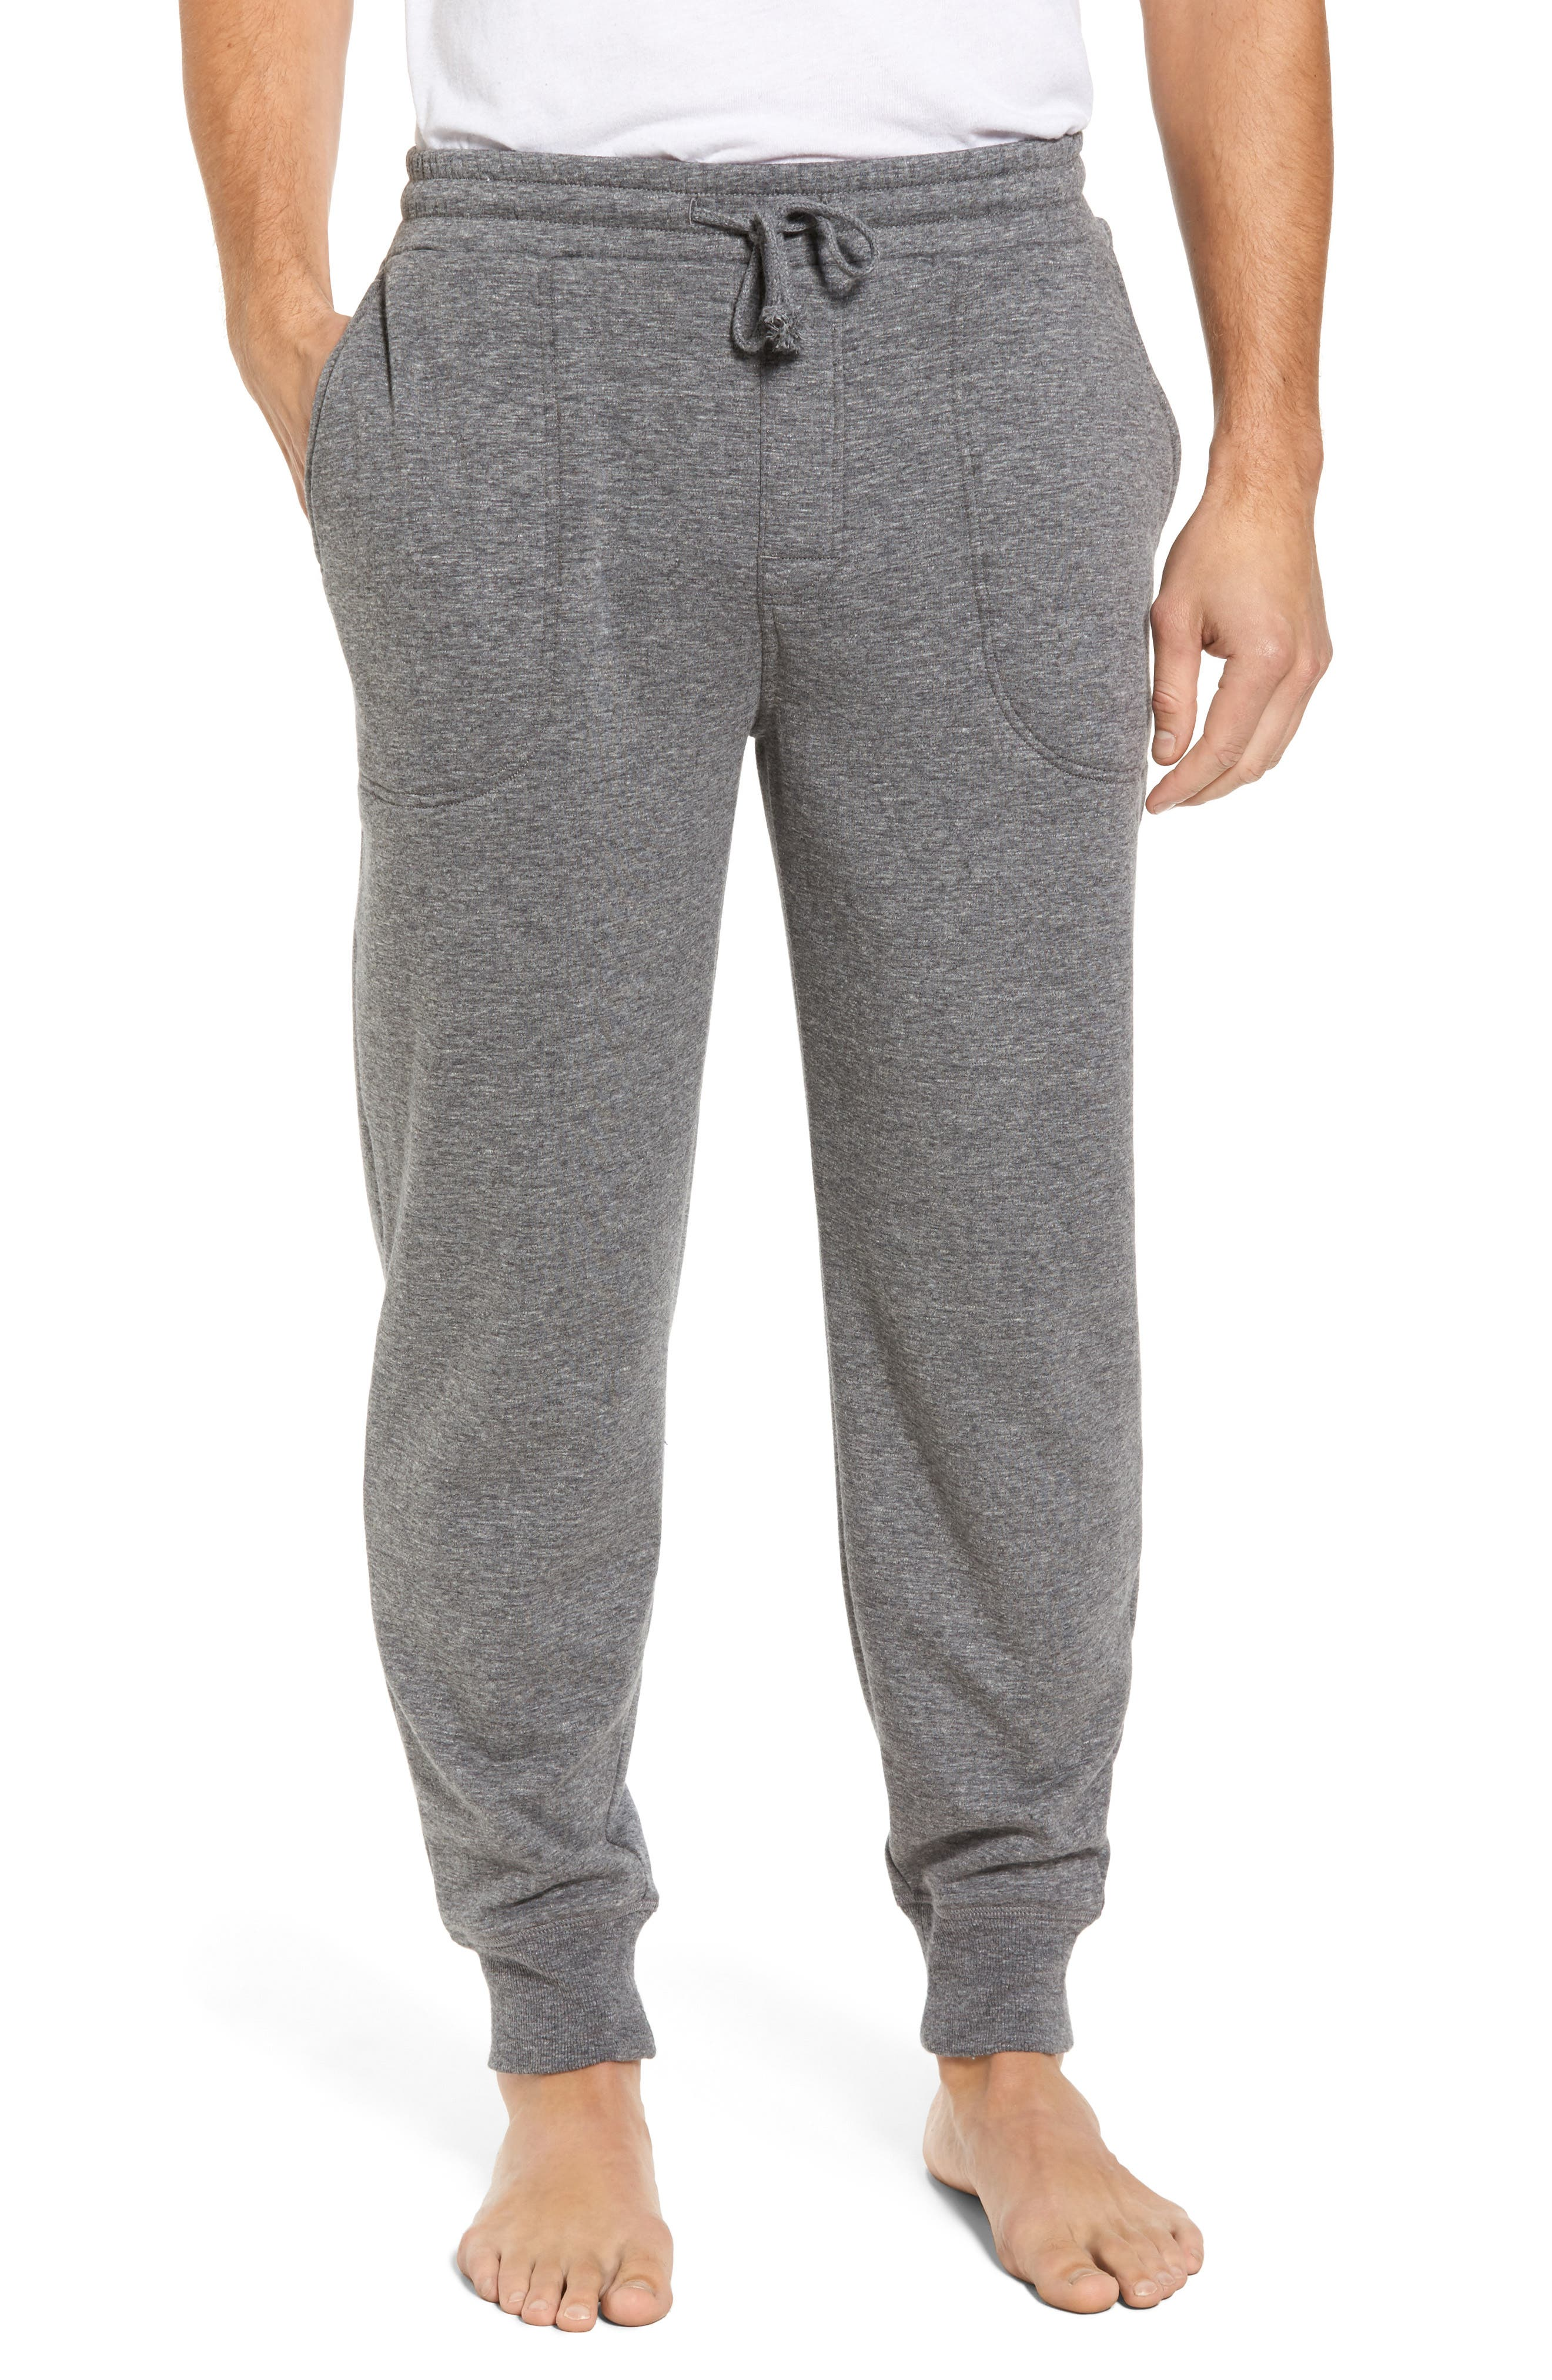 French Terry Pajama Pants,                         Main,                         color, Grey Heather